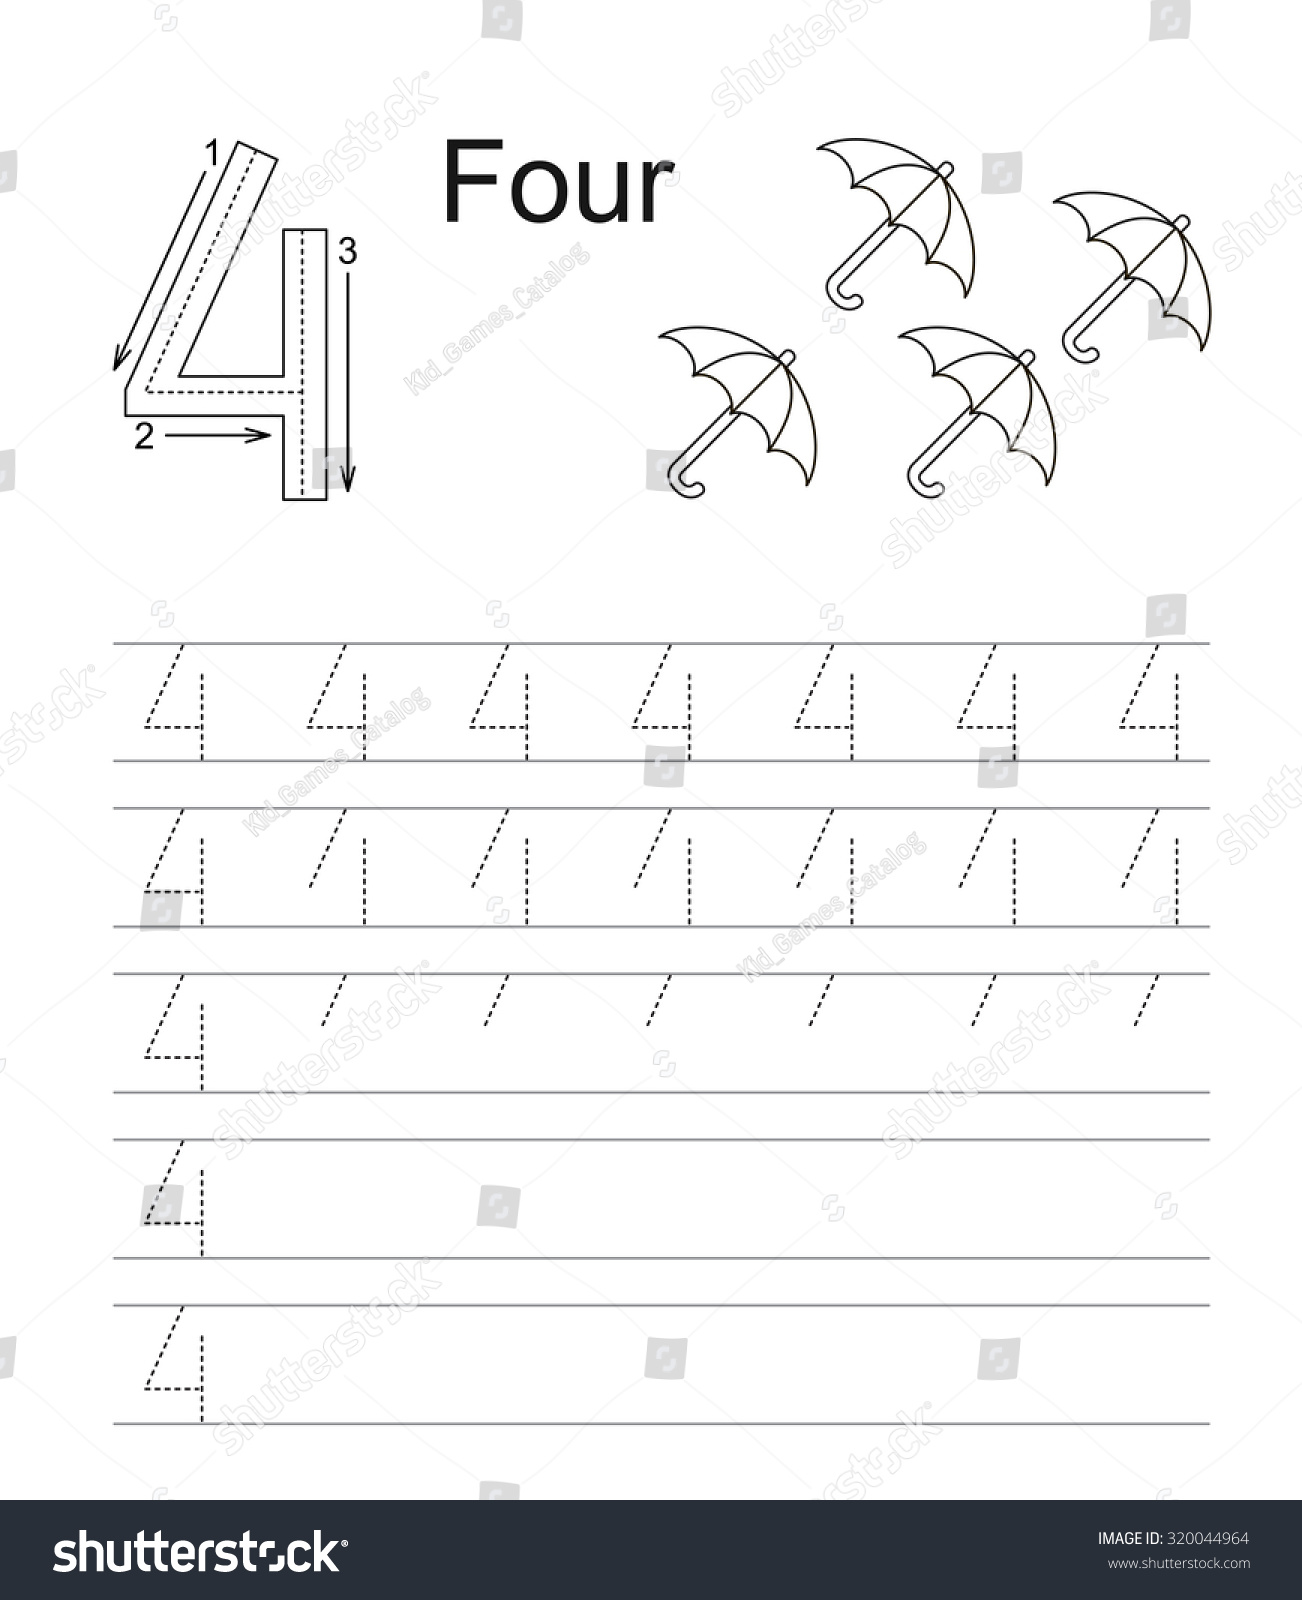 Vector Exercise Illustrated Alphabet Learn Handwriting Tracing Worksheet For Figure 4 Four